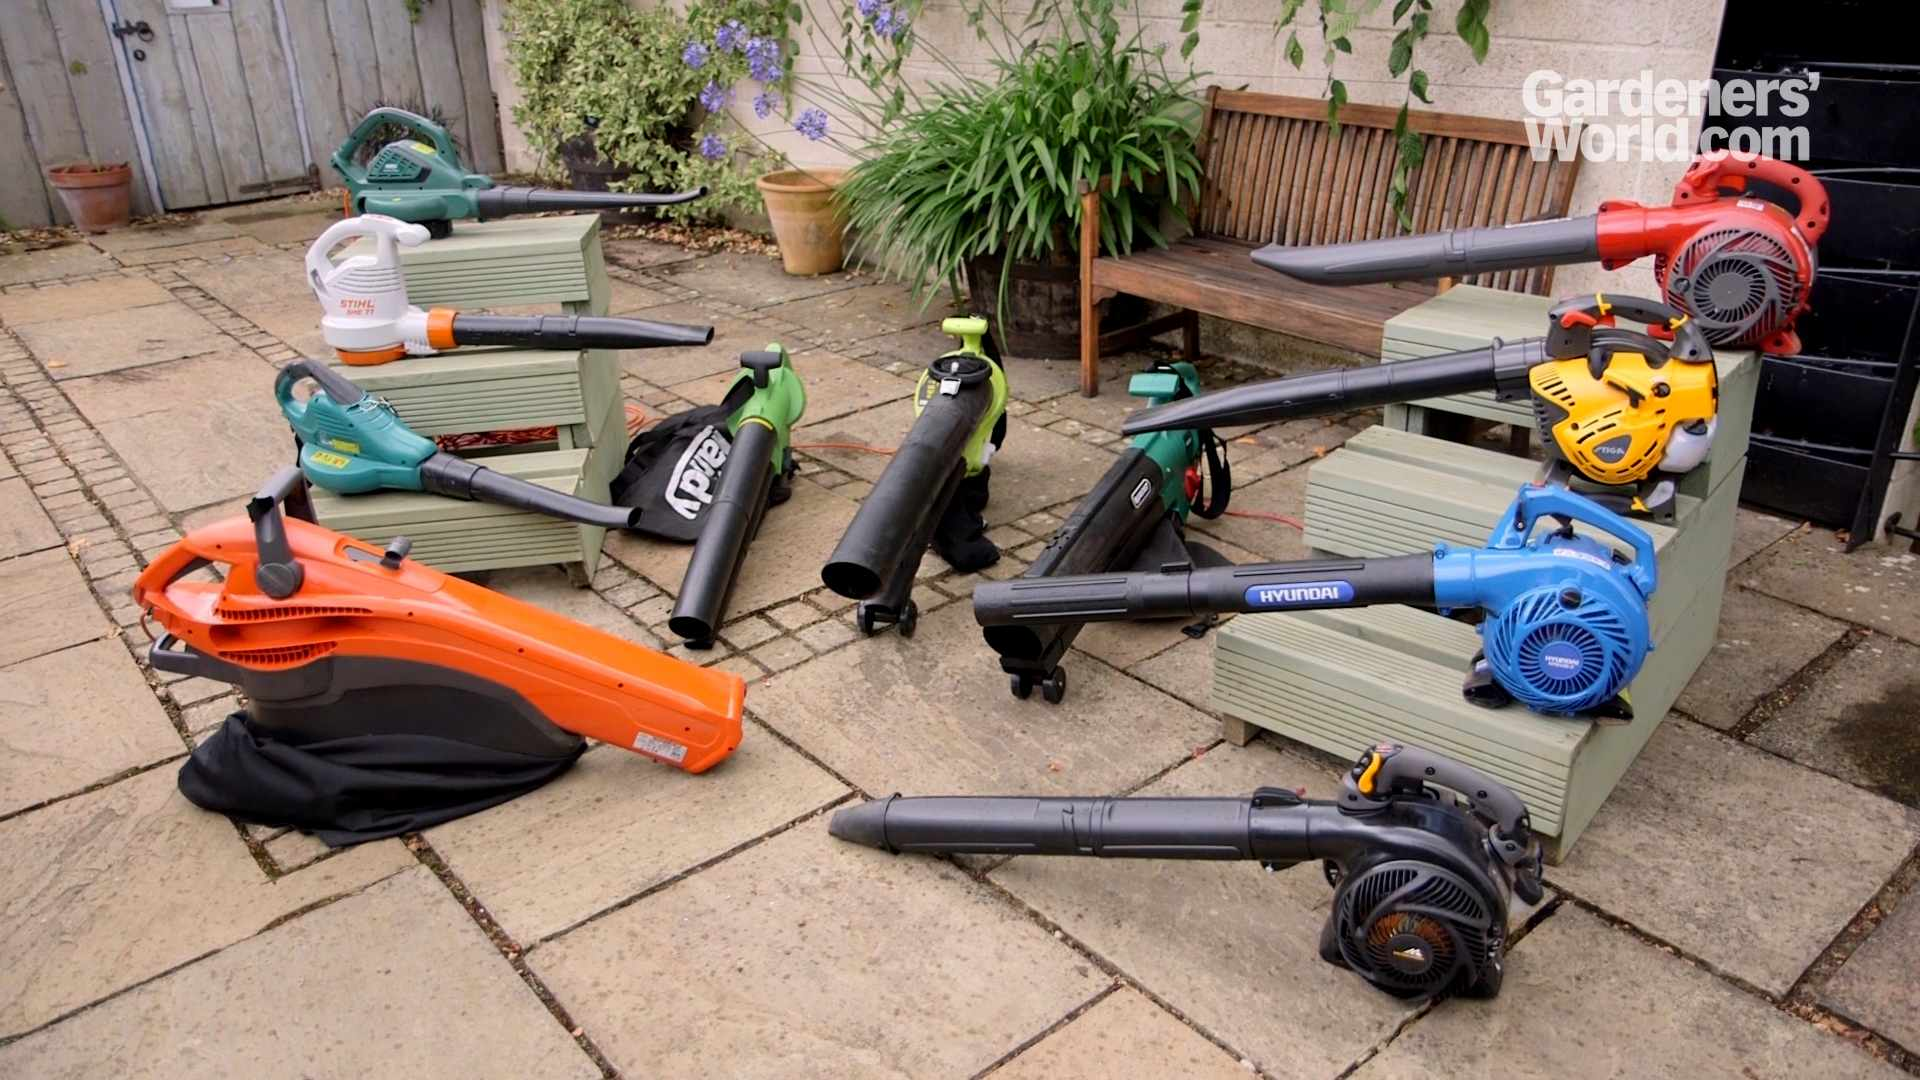 Video: Blower vacs - Buyer's Guide